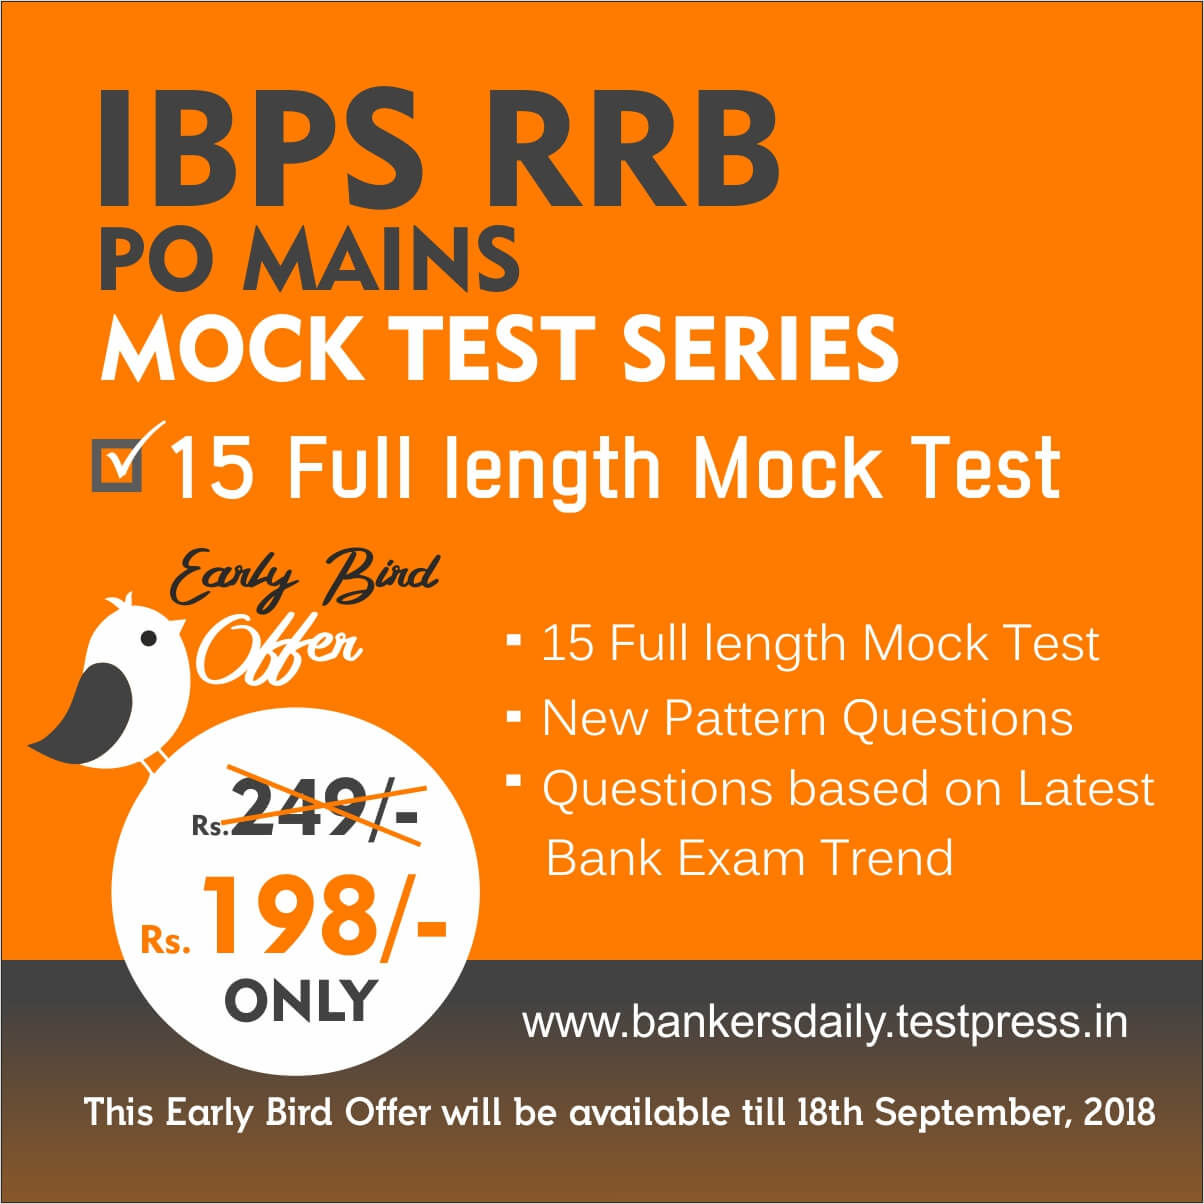 IBPS RRB PO Mains 2018 - 15 FULL LENGTH MOCK TEST SERIES